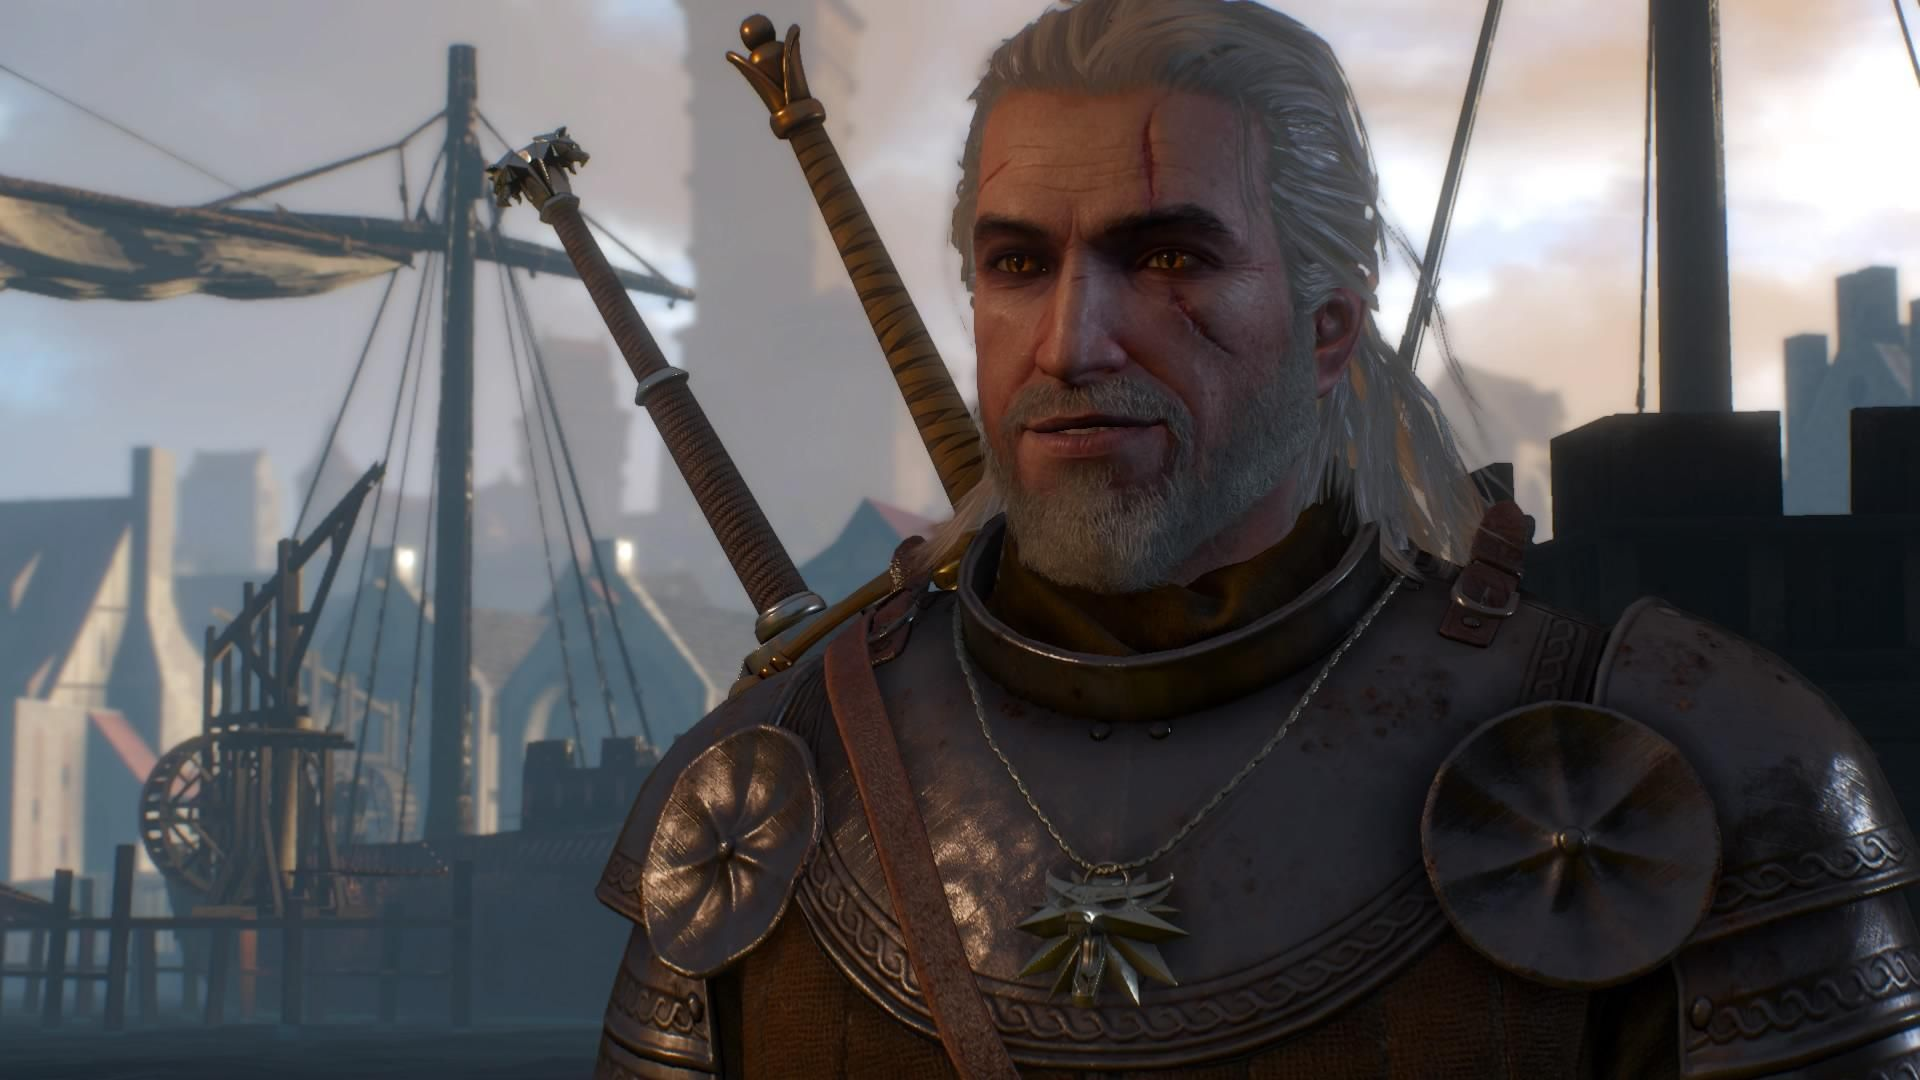 Post your smiling Geralts #TheWitcher3 #PS4 #WILDHUNT #PS4share #games #gaming #TheWitcher #TheWitcher3WildHunt